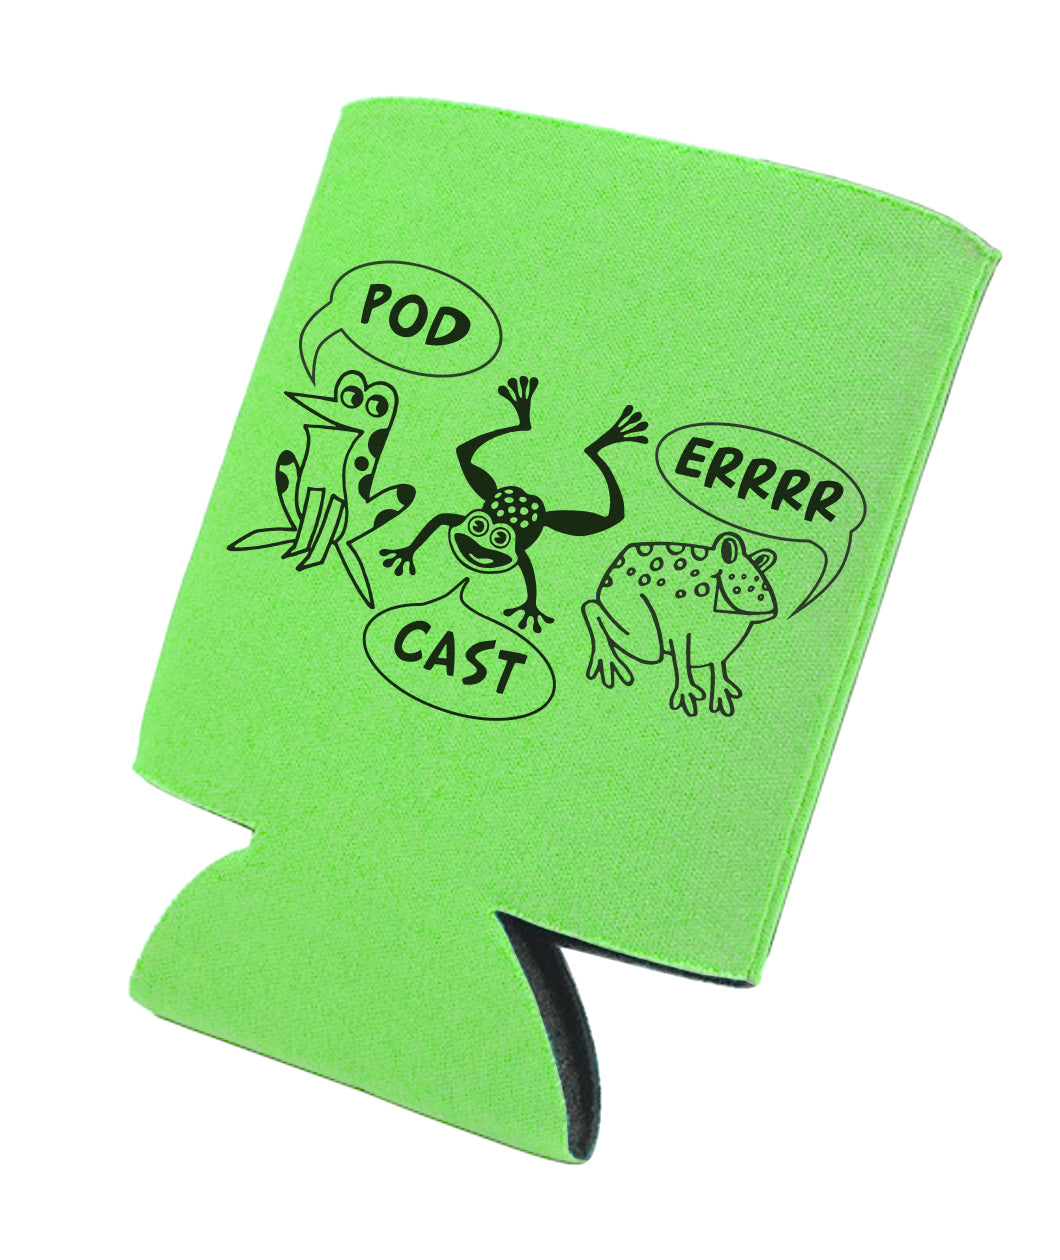 Pod-cast-errr Coozie